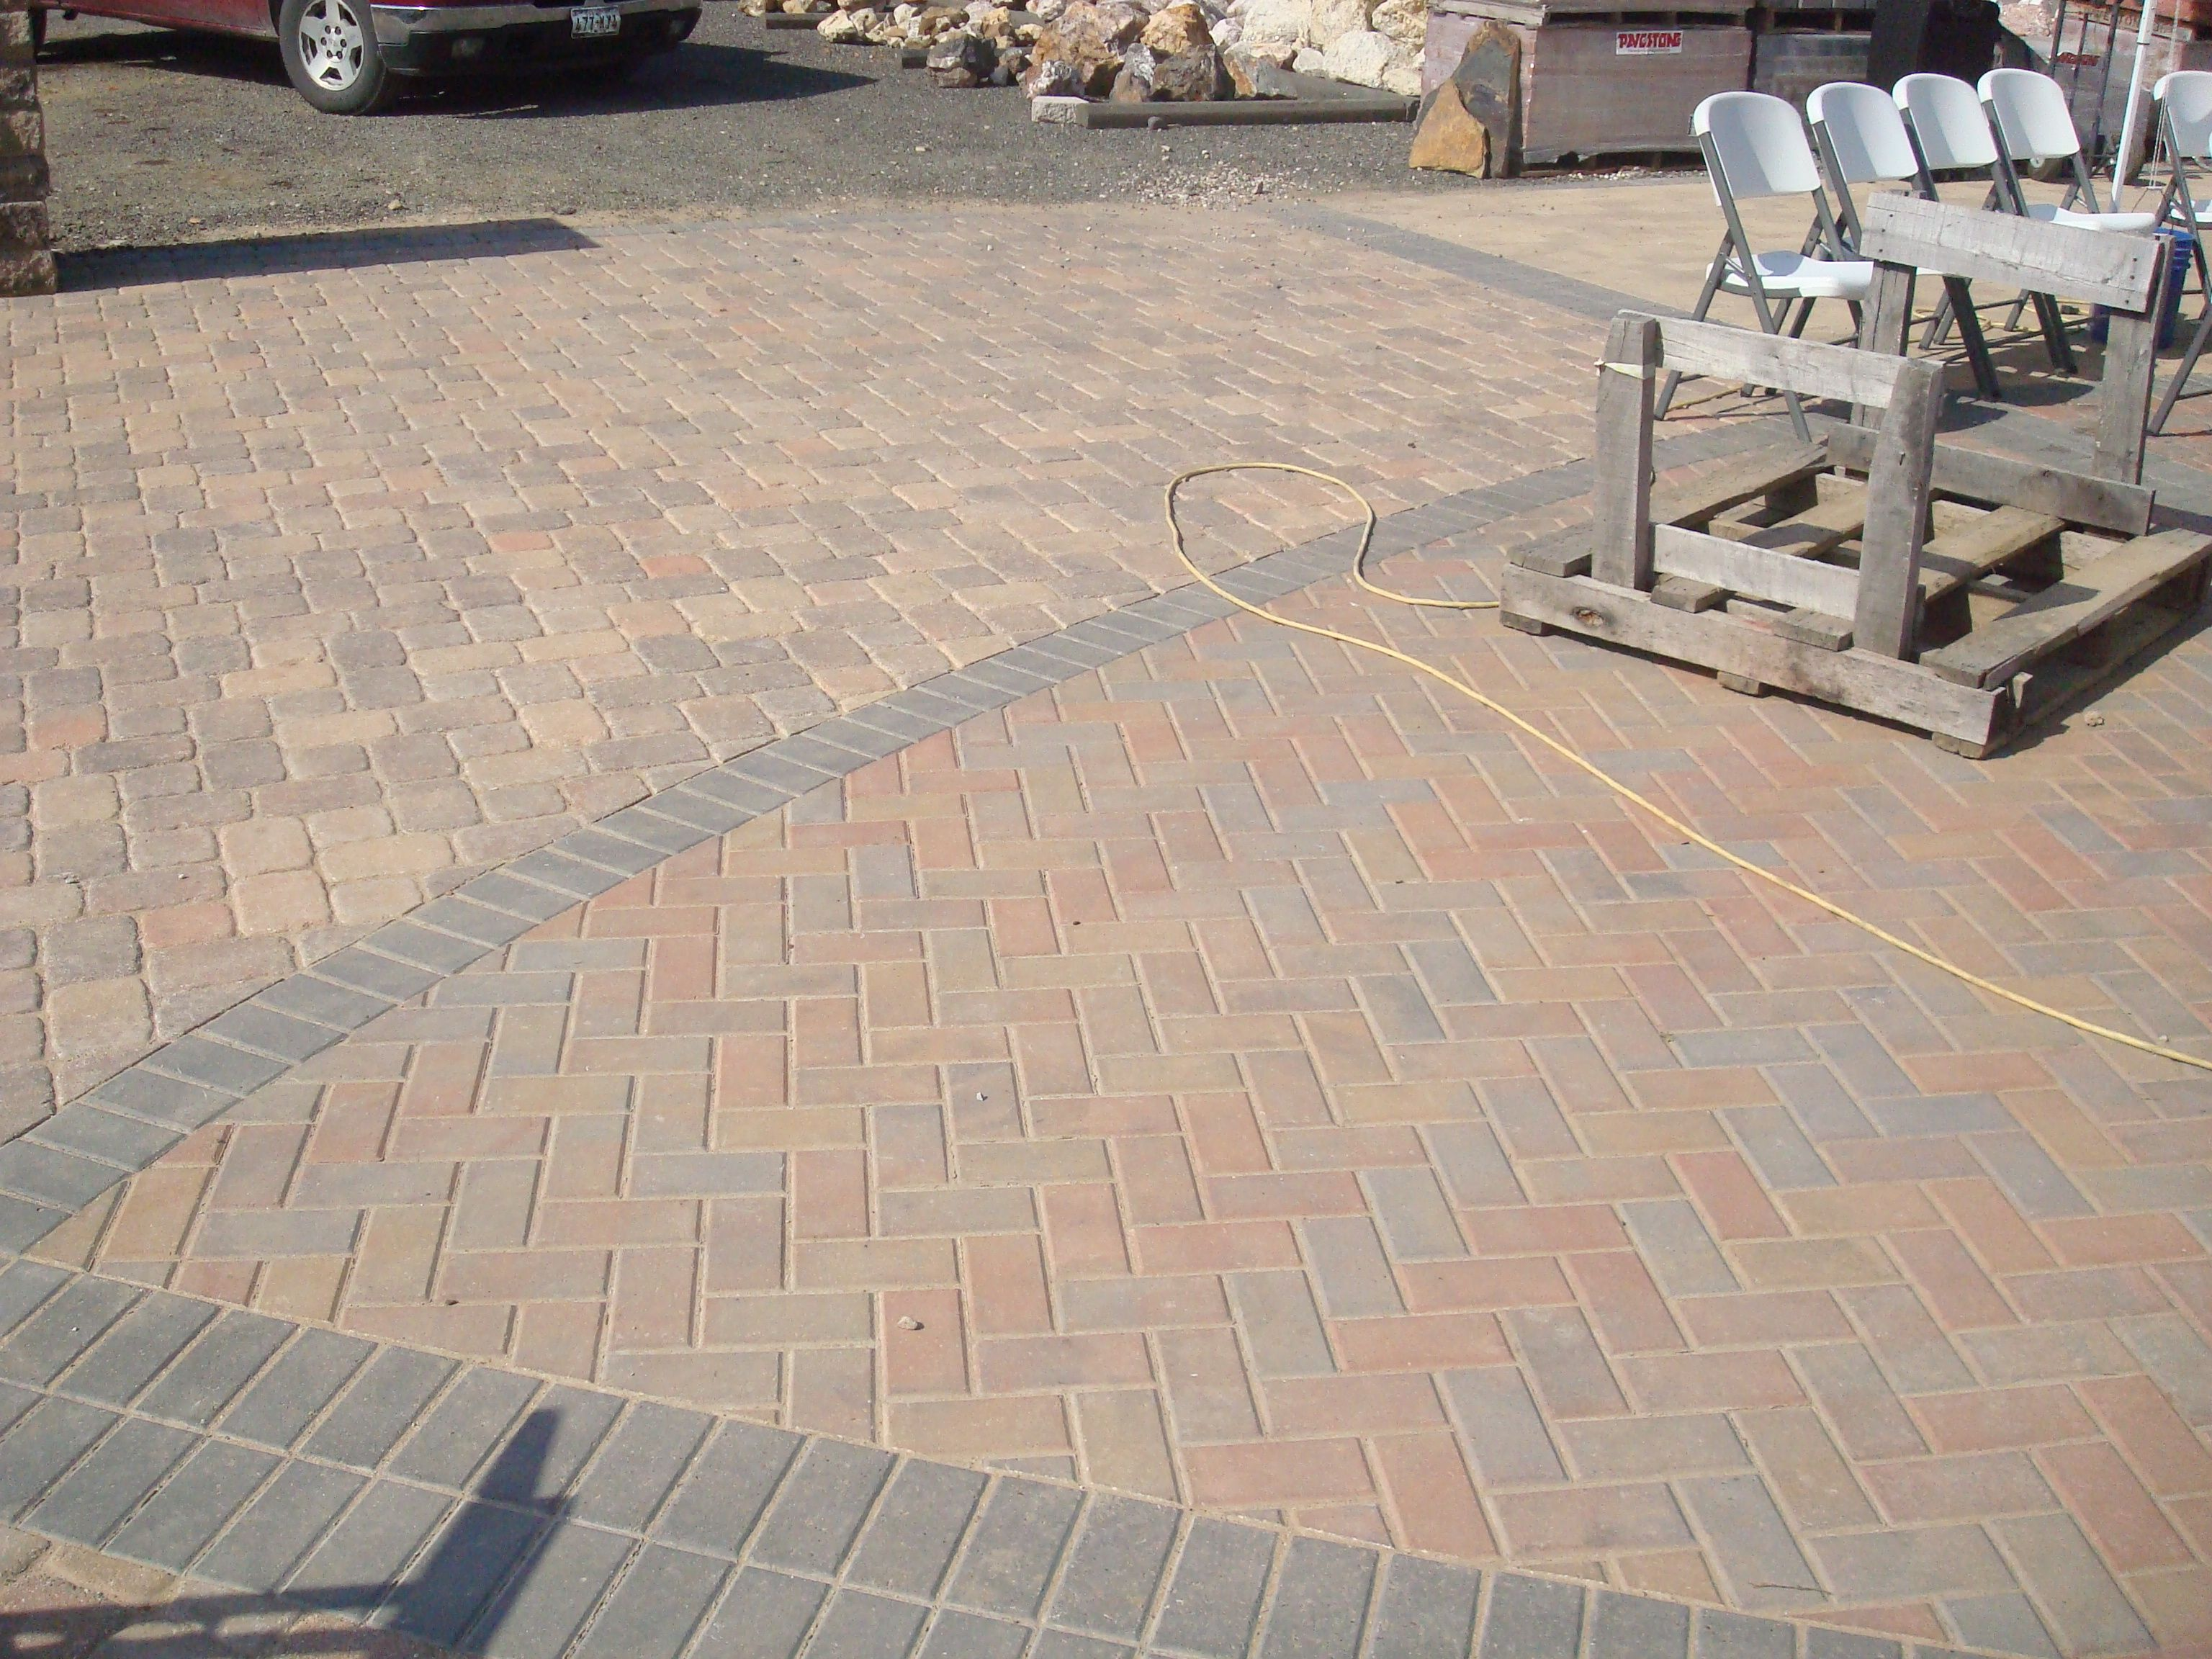 stone patio designs patio stone design ideas pavers retaining walls patio - Patio Stone Ideas With Pictures